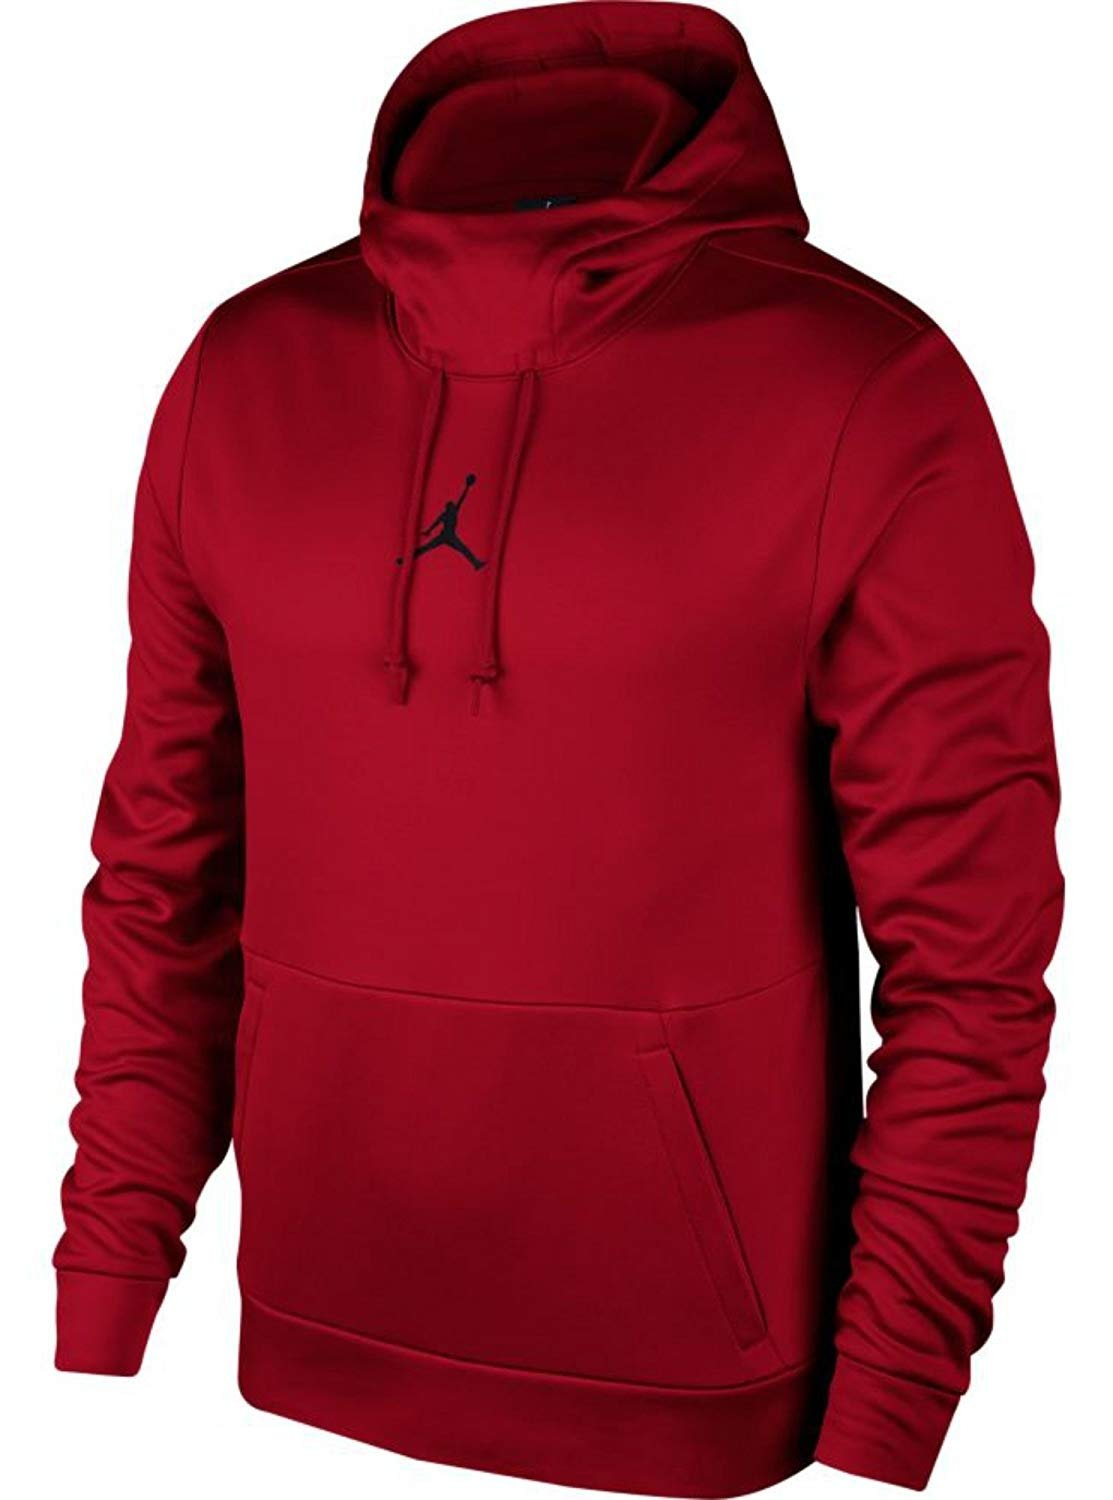 NIKE Mens Jordan Therma 23 Training Pull Over Hoodie Gym Red/Black 861559-687 Size Small